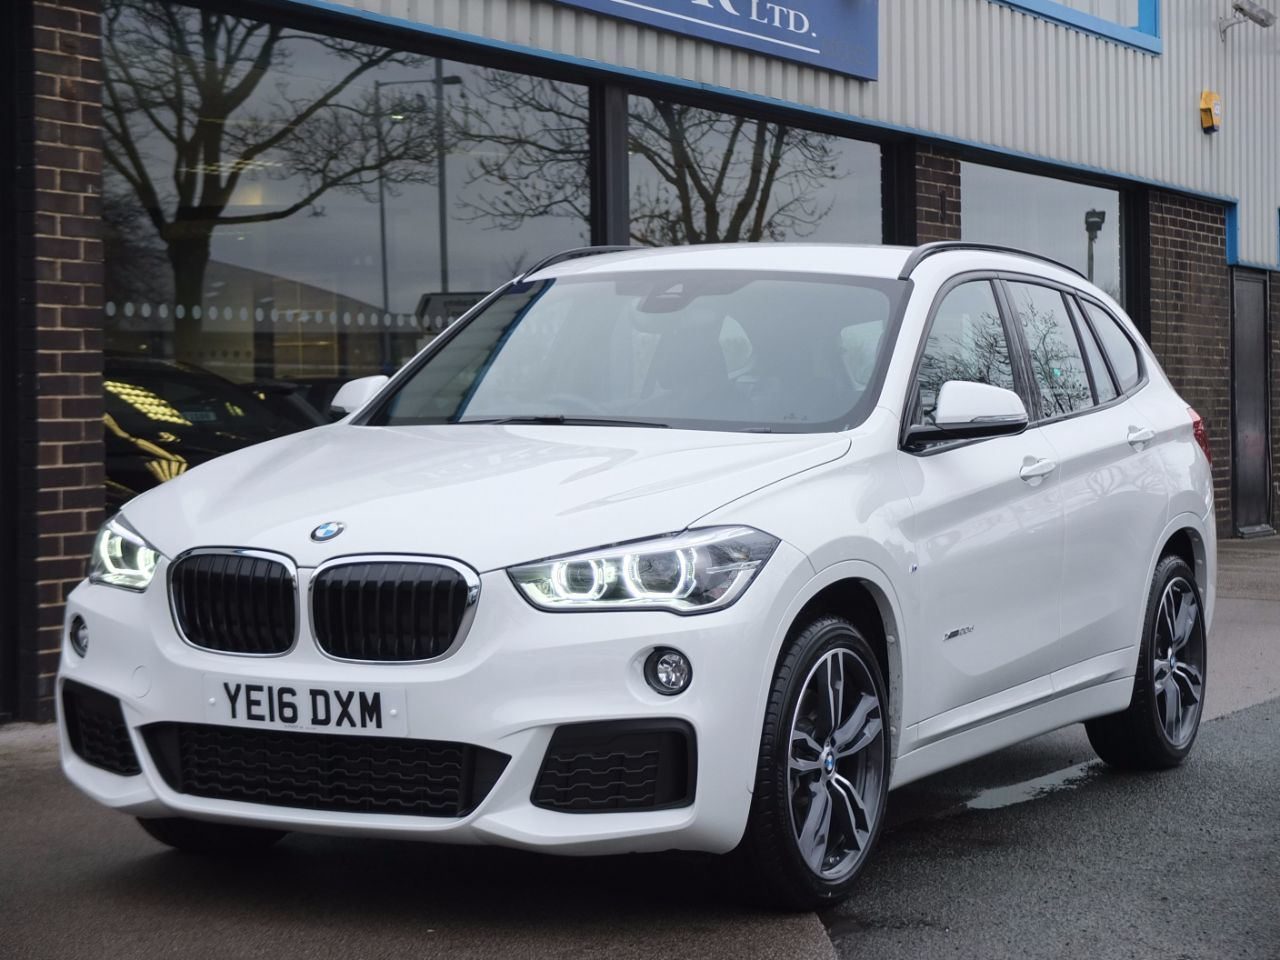 BMW X1 2.0 xDrive 20d M Sport Auto Estate Diesel Alpine WhiteBMW X1 2.0 xDrive 20d M Sport Auto Estate Diesel Alpine White at fa Roper Ltd Bradford